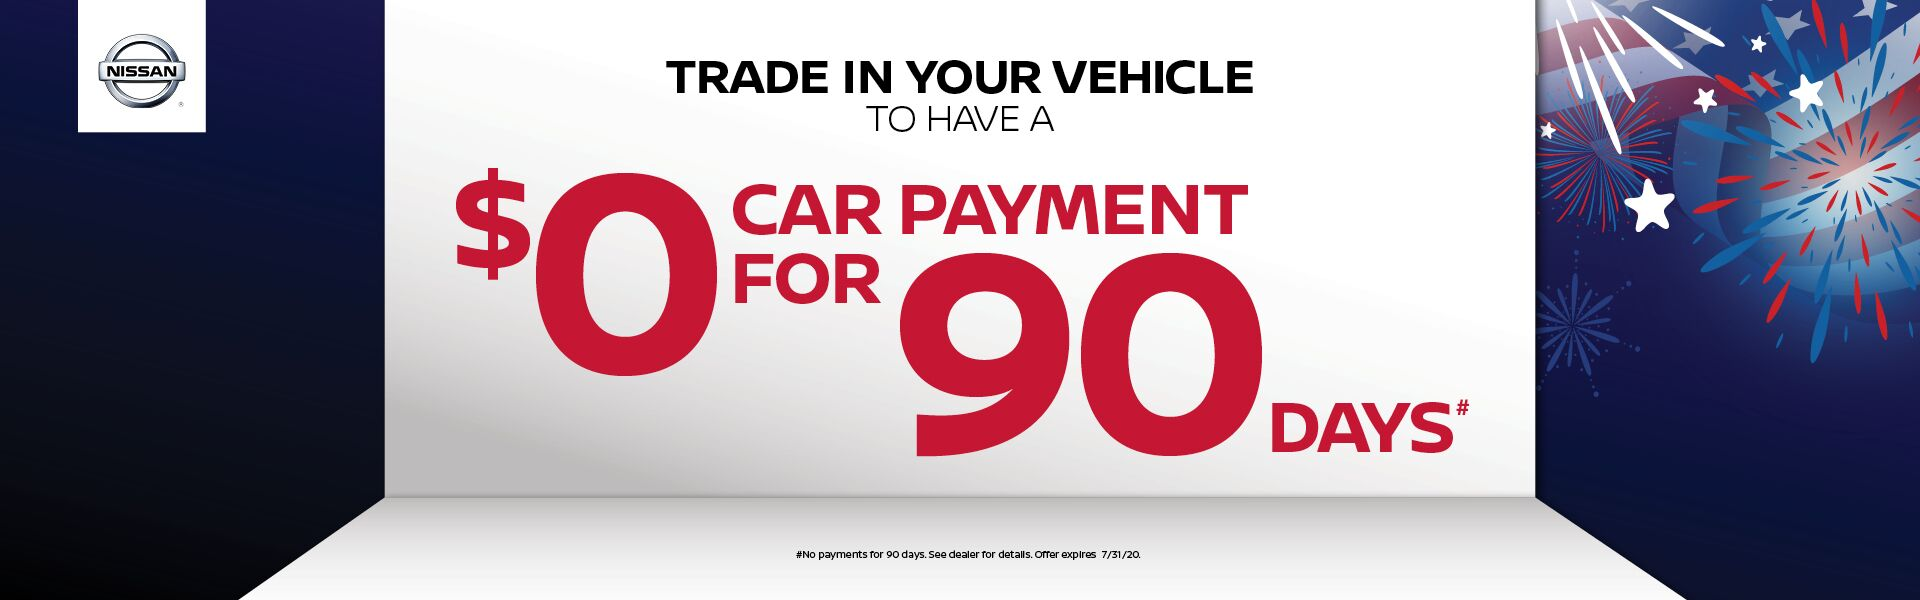 Trade in Your Vehicle for $0 Car Payment